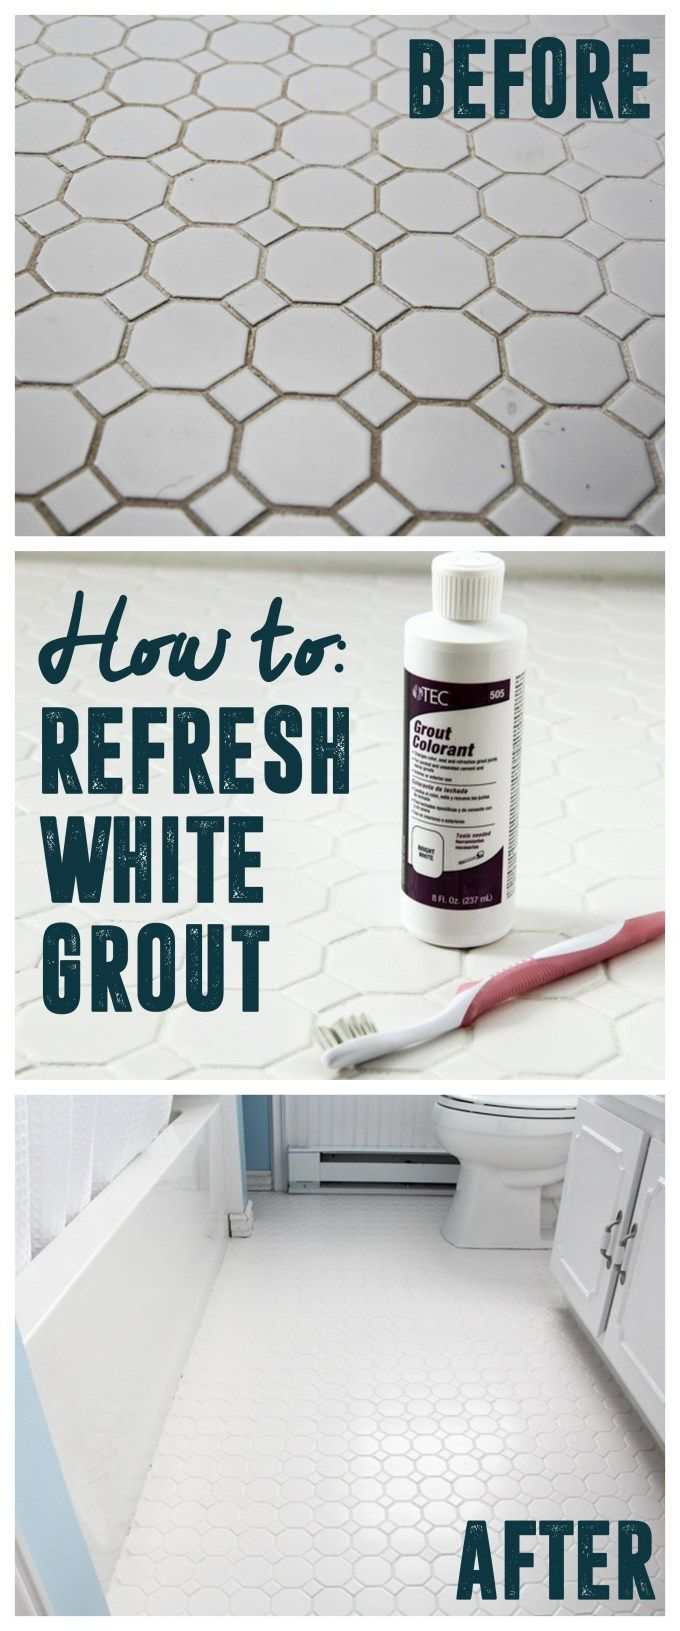 How to Refresh White Grout  Tile  Grout cleaner Clean